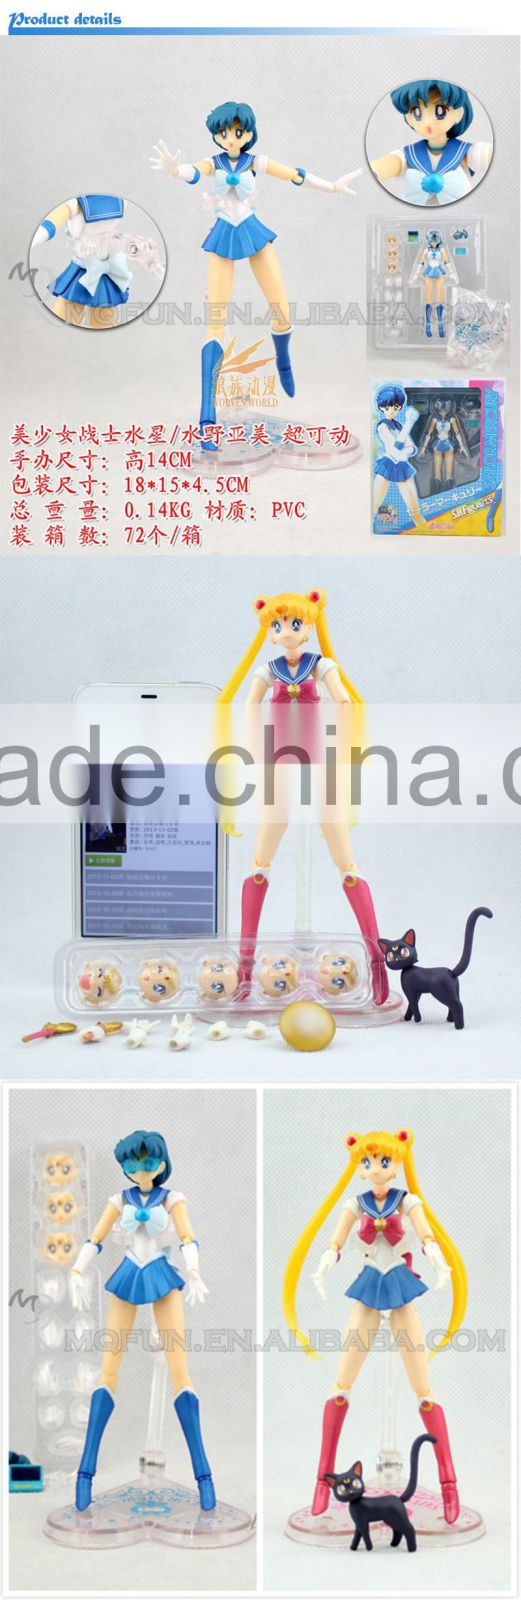 MINI QUTE 4 style 15cm Japanese anime figure sailor moon action figures brinquedos girl toys cartoon movie gift NO.MQ 115